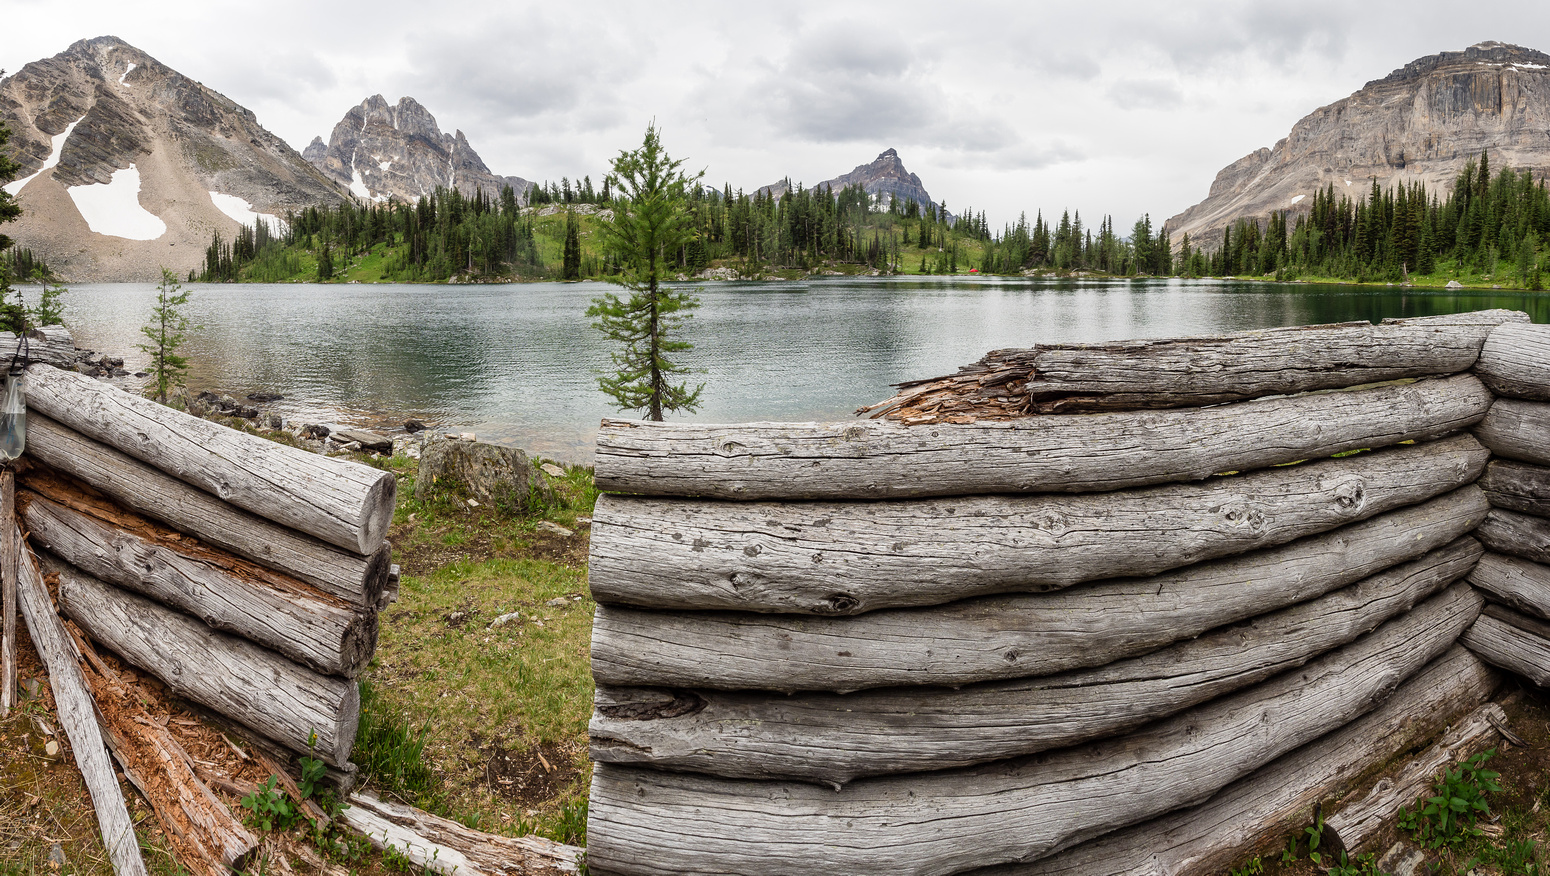 An old cabin sits along the shores of Aurora Lake - the views from it aren't too shabby! Aurora at left and Alcantara in the distance.